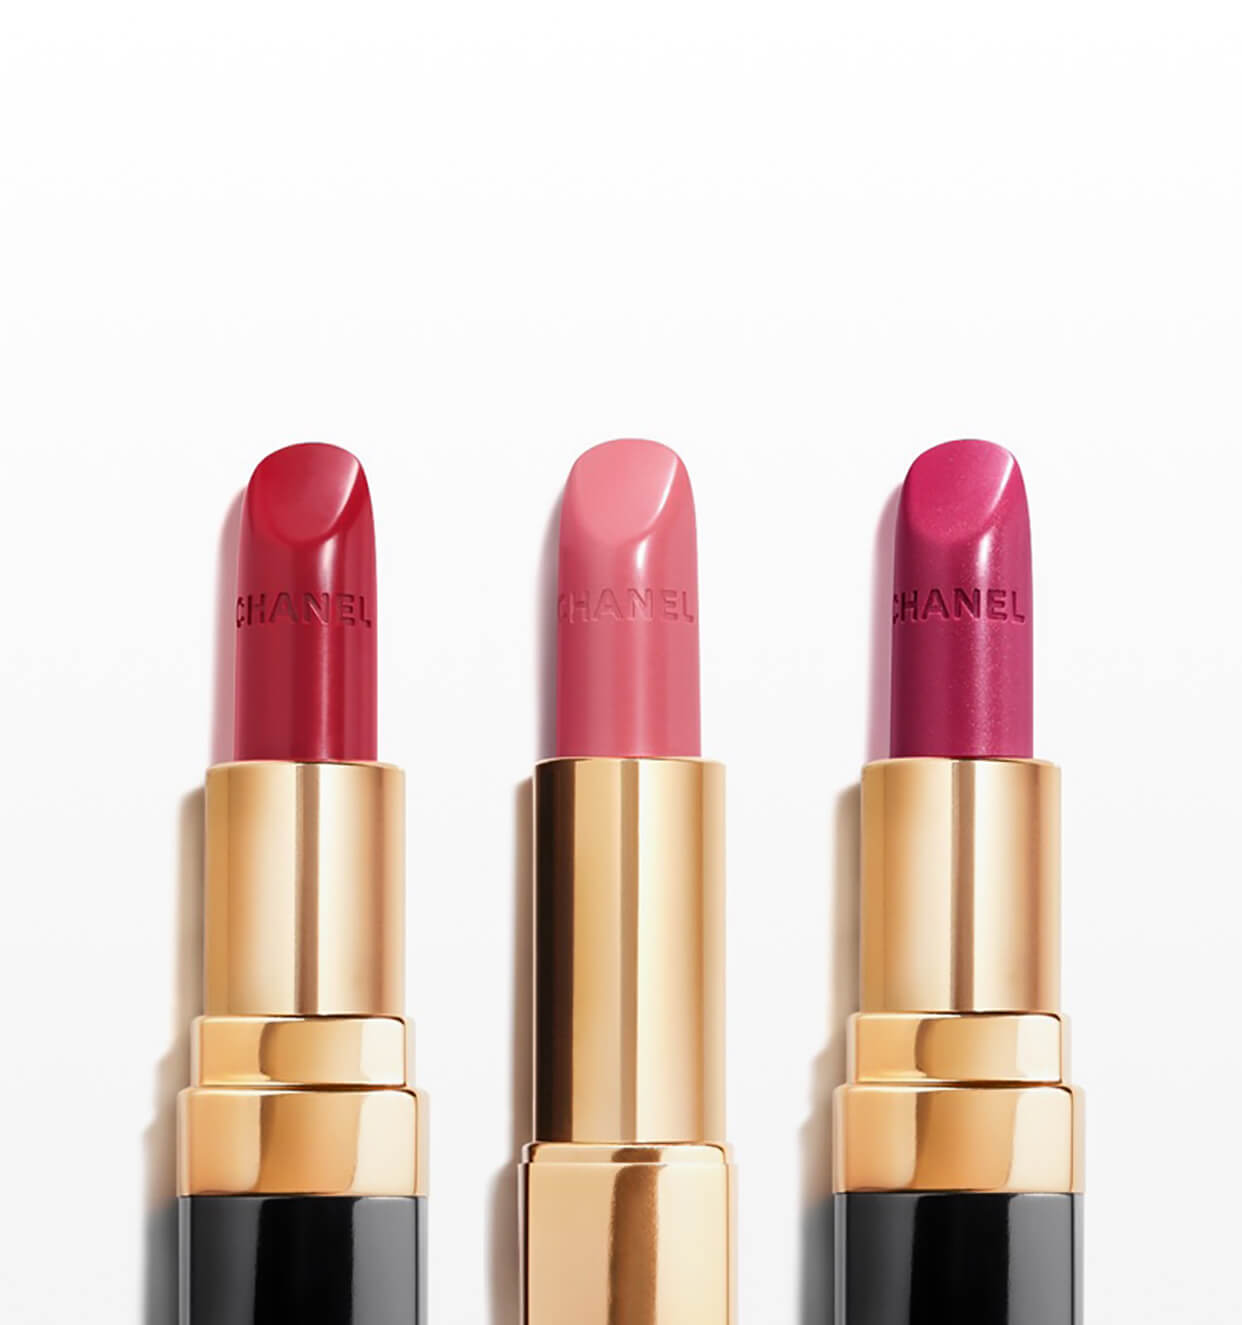 Lipsticks - Matte Lipsticks & Glossy Lipsticks | CHANEL